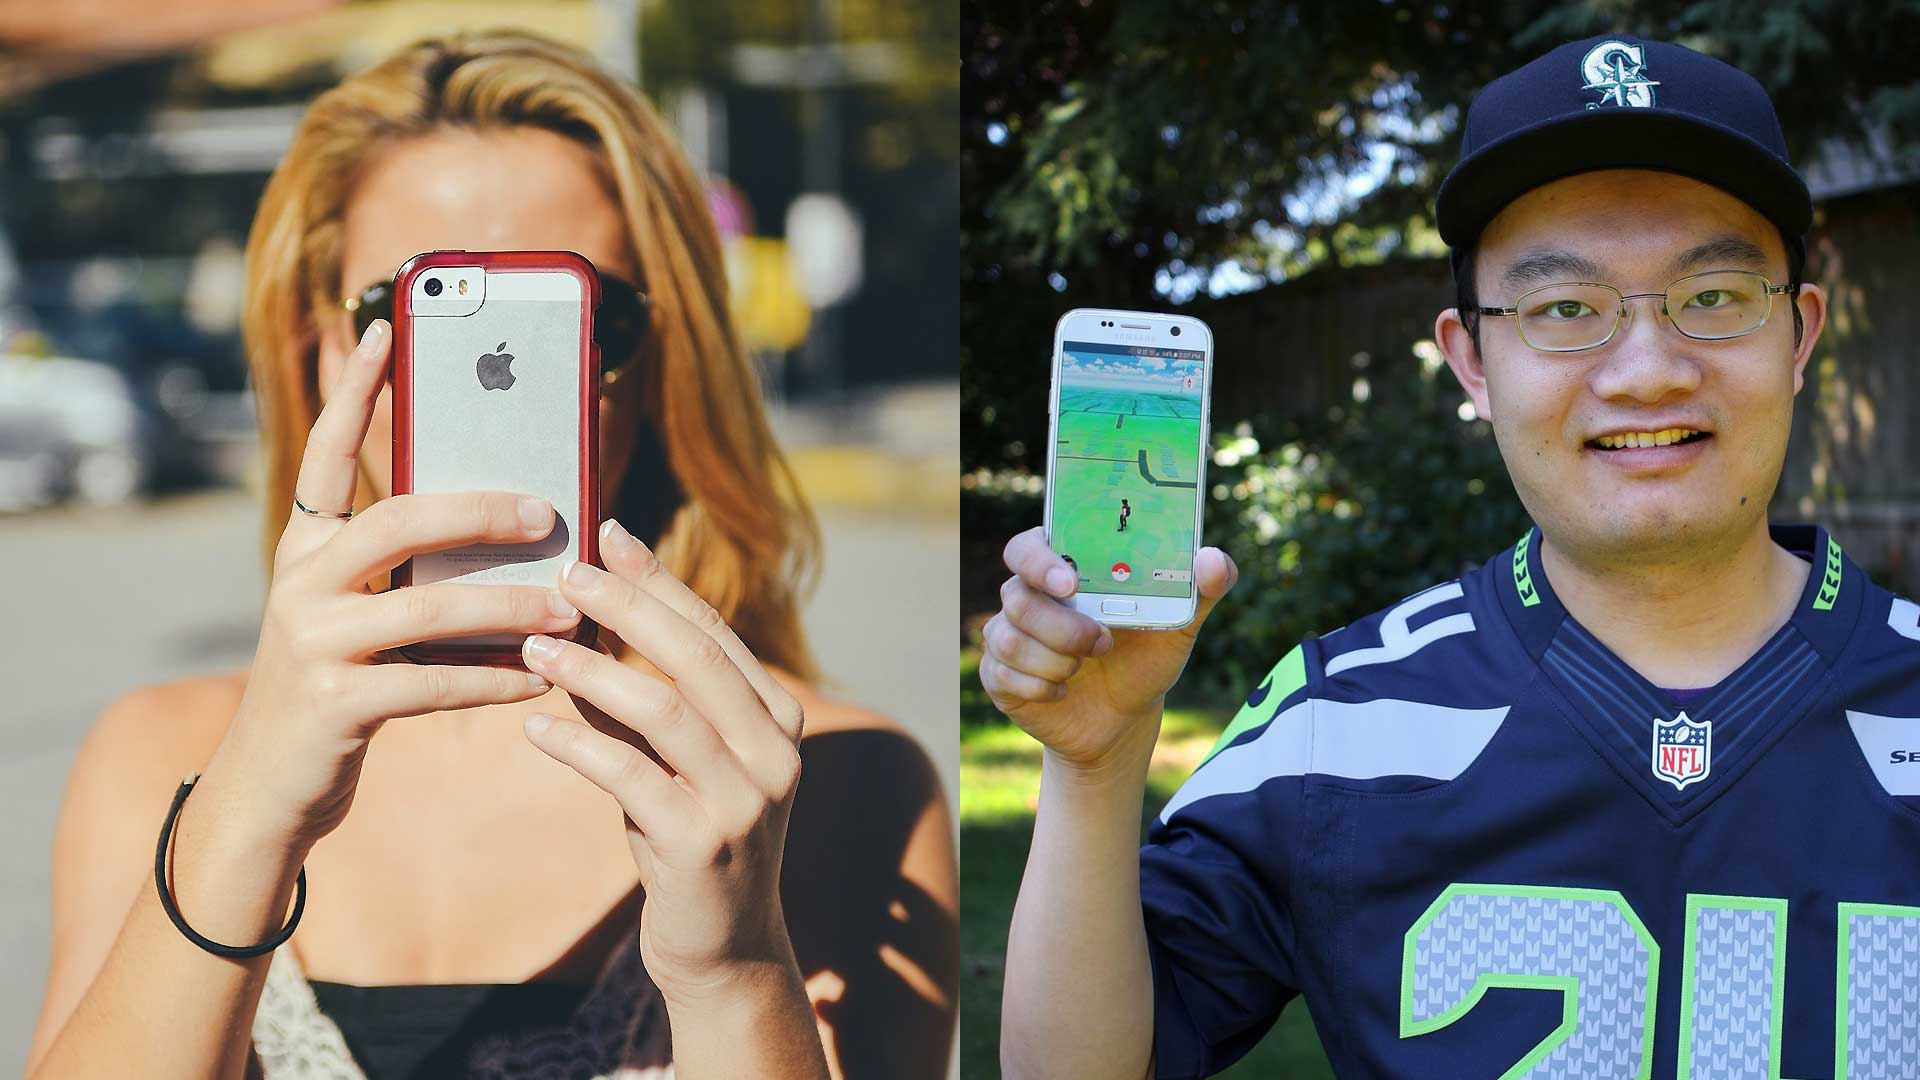 iphone vs androind compare and contrast Jasmine glass english 1101 comparative essay: iphone vs samsung phone technique: point by point in the 21st century, the smart phone has already become an indispensable instrument in human life.